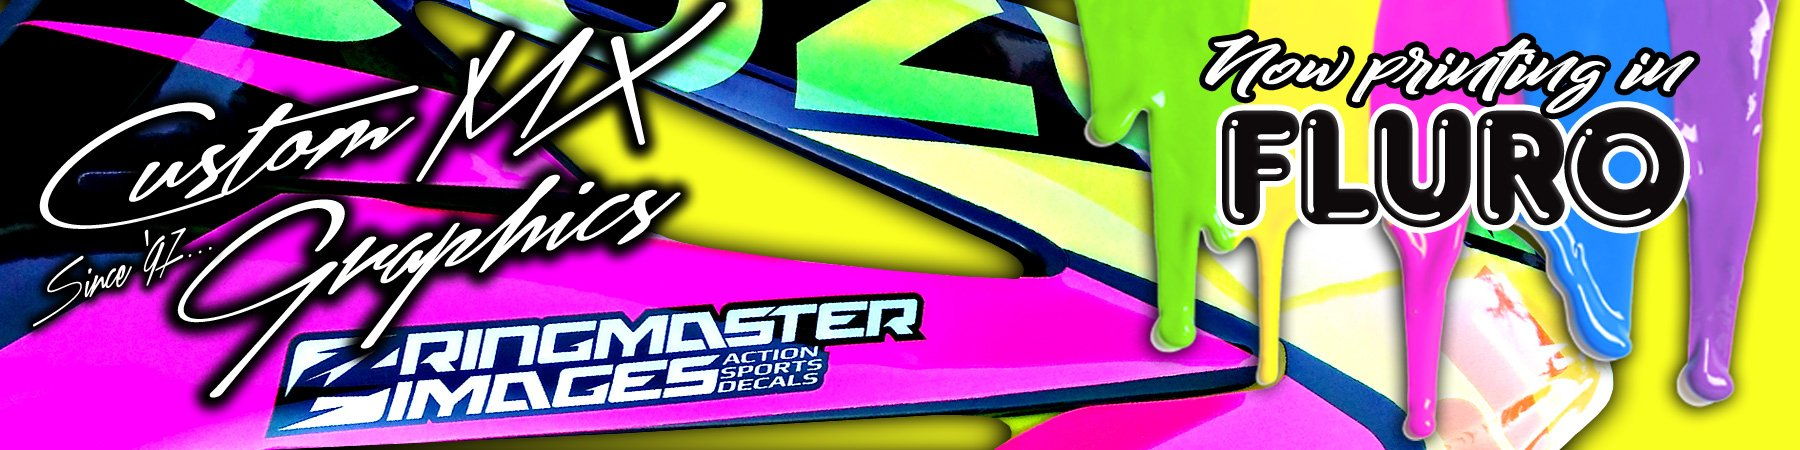 custom-fluro-flo-mx-graphic